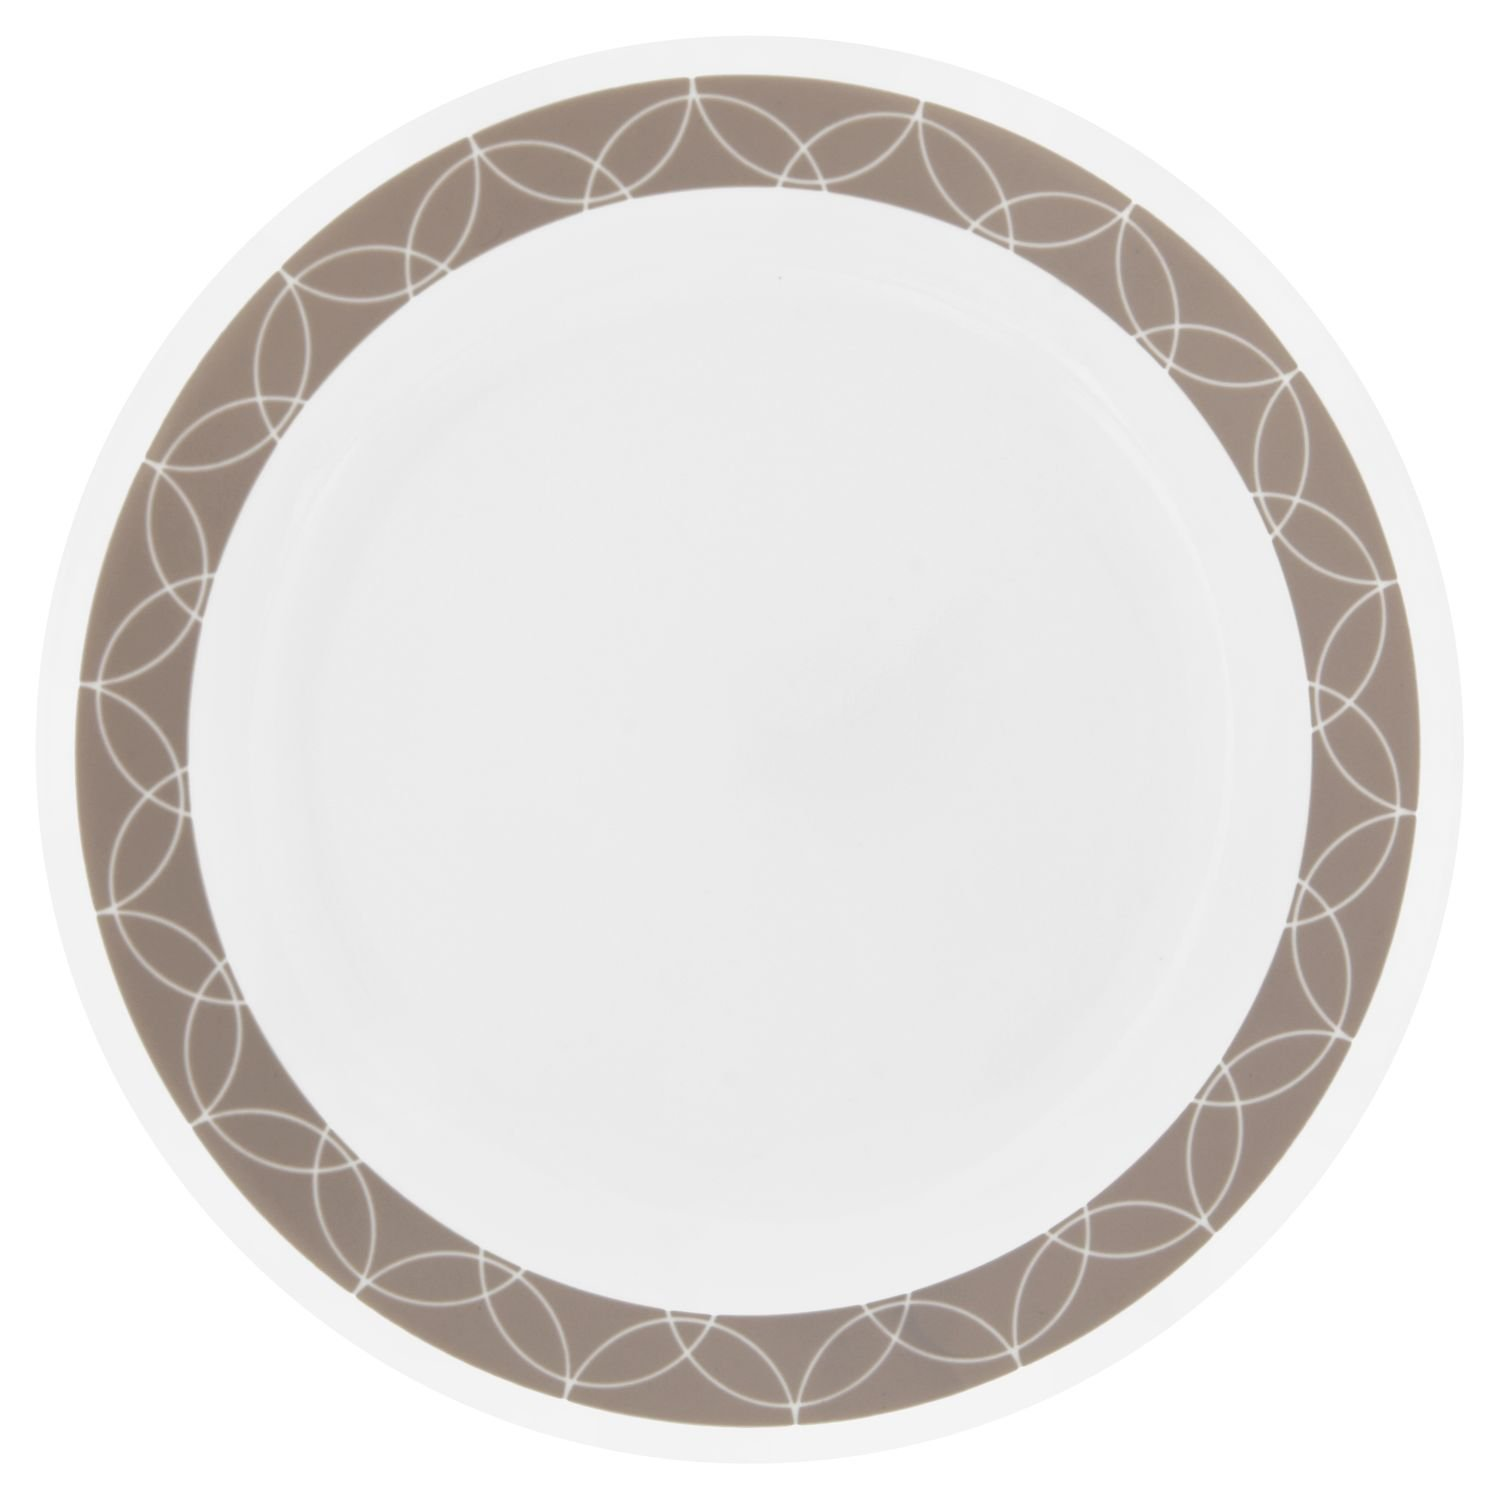 Corelle Livingware Sand Sketch 8.5 Lunch Plate (Set of 4) by Corelle Coordinates World Kitchen 1119349